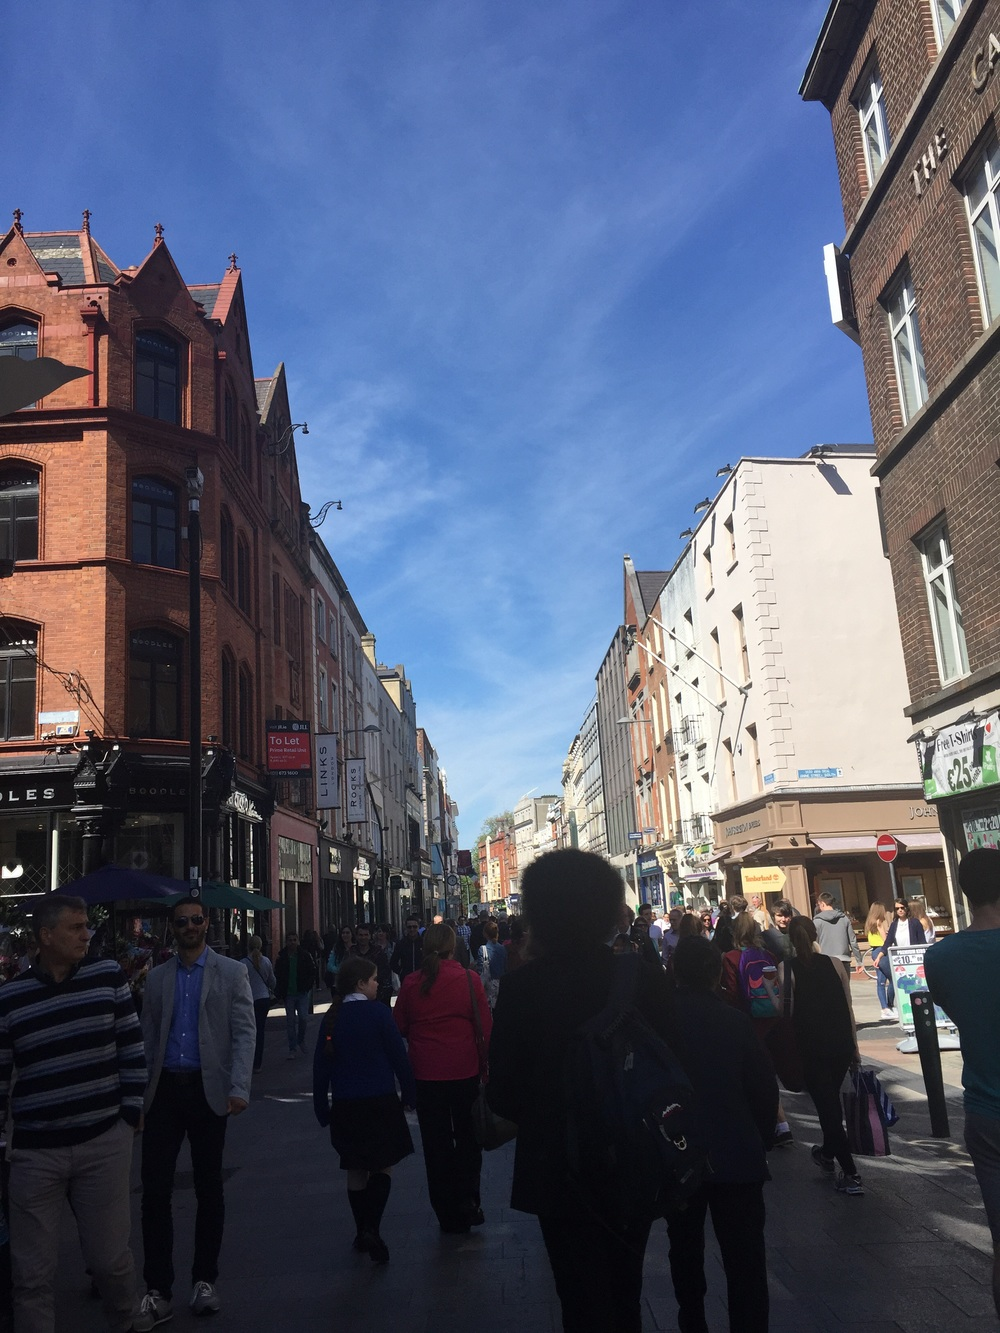 The always busy Grafton Street, much like New York's Madison Avenue with the high end shops and stores.